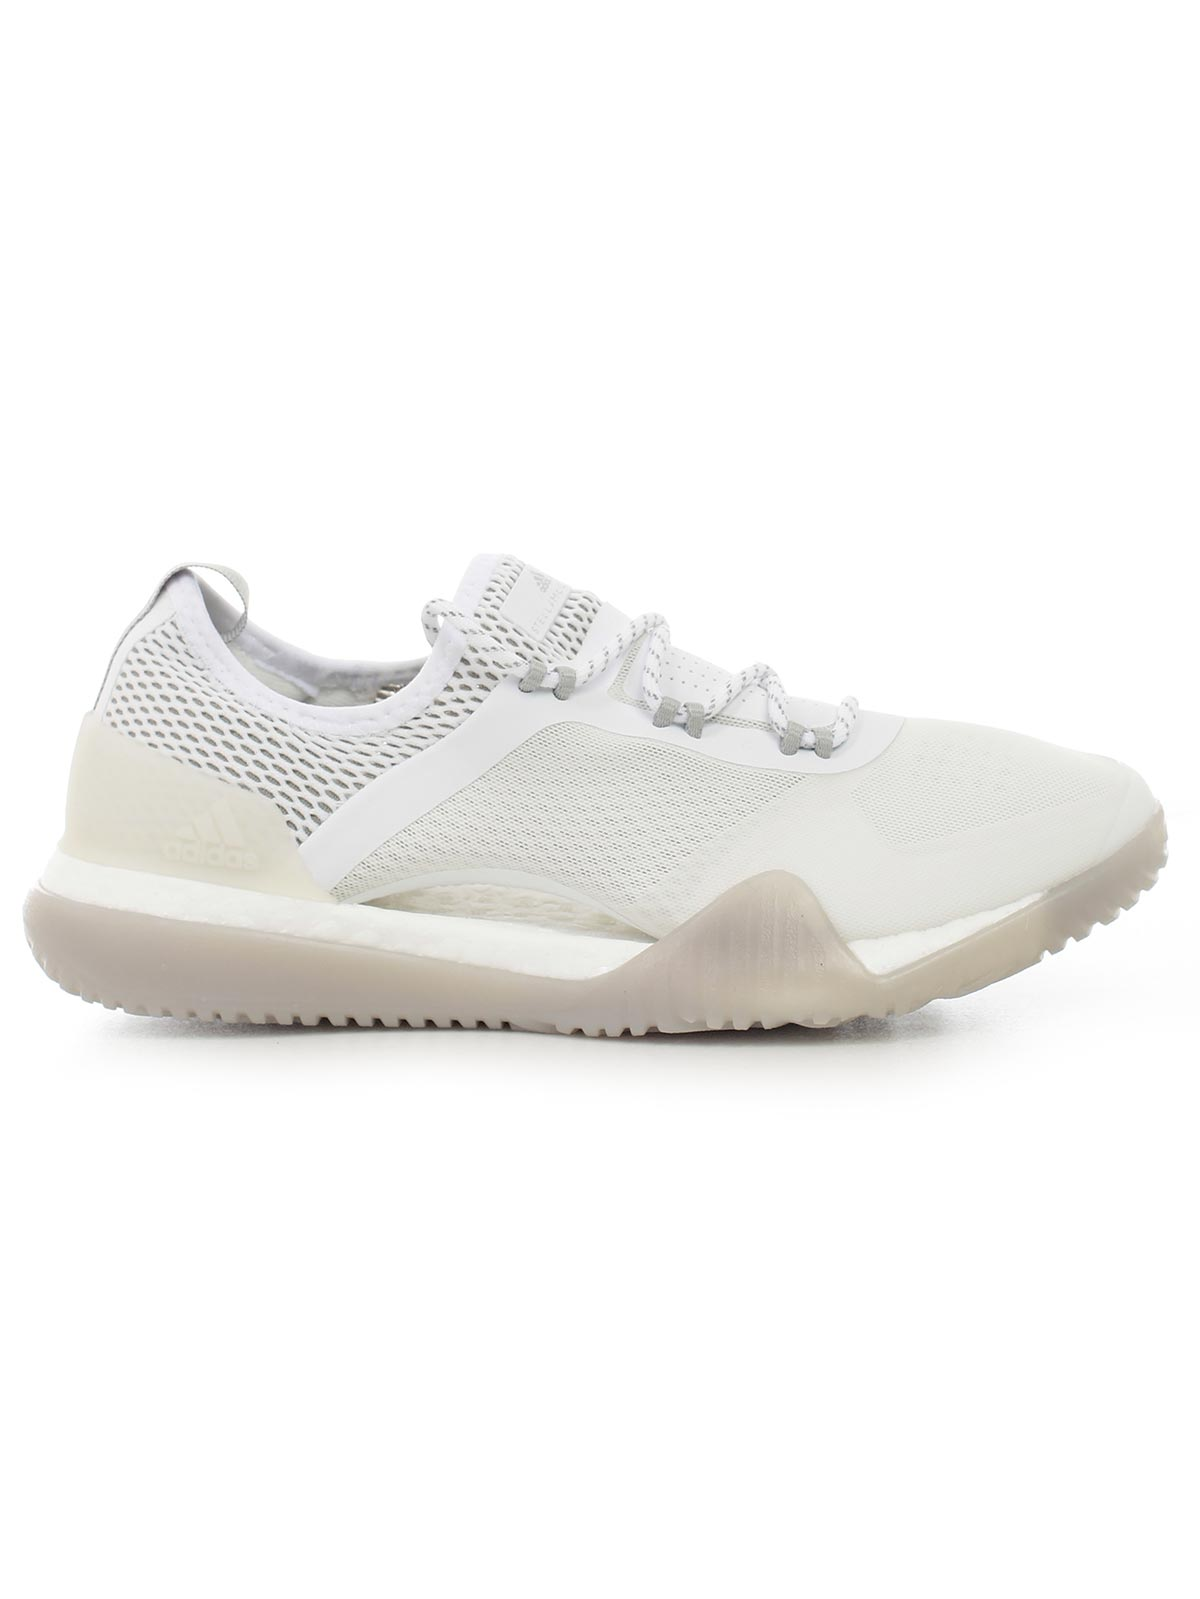 Picture of Adidas By Stella Mccartney Footwear